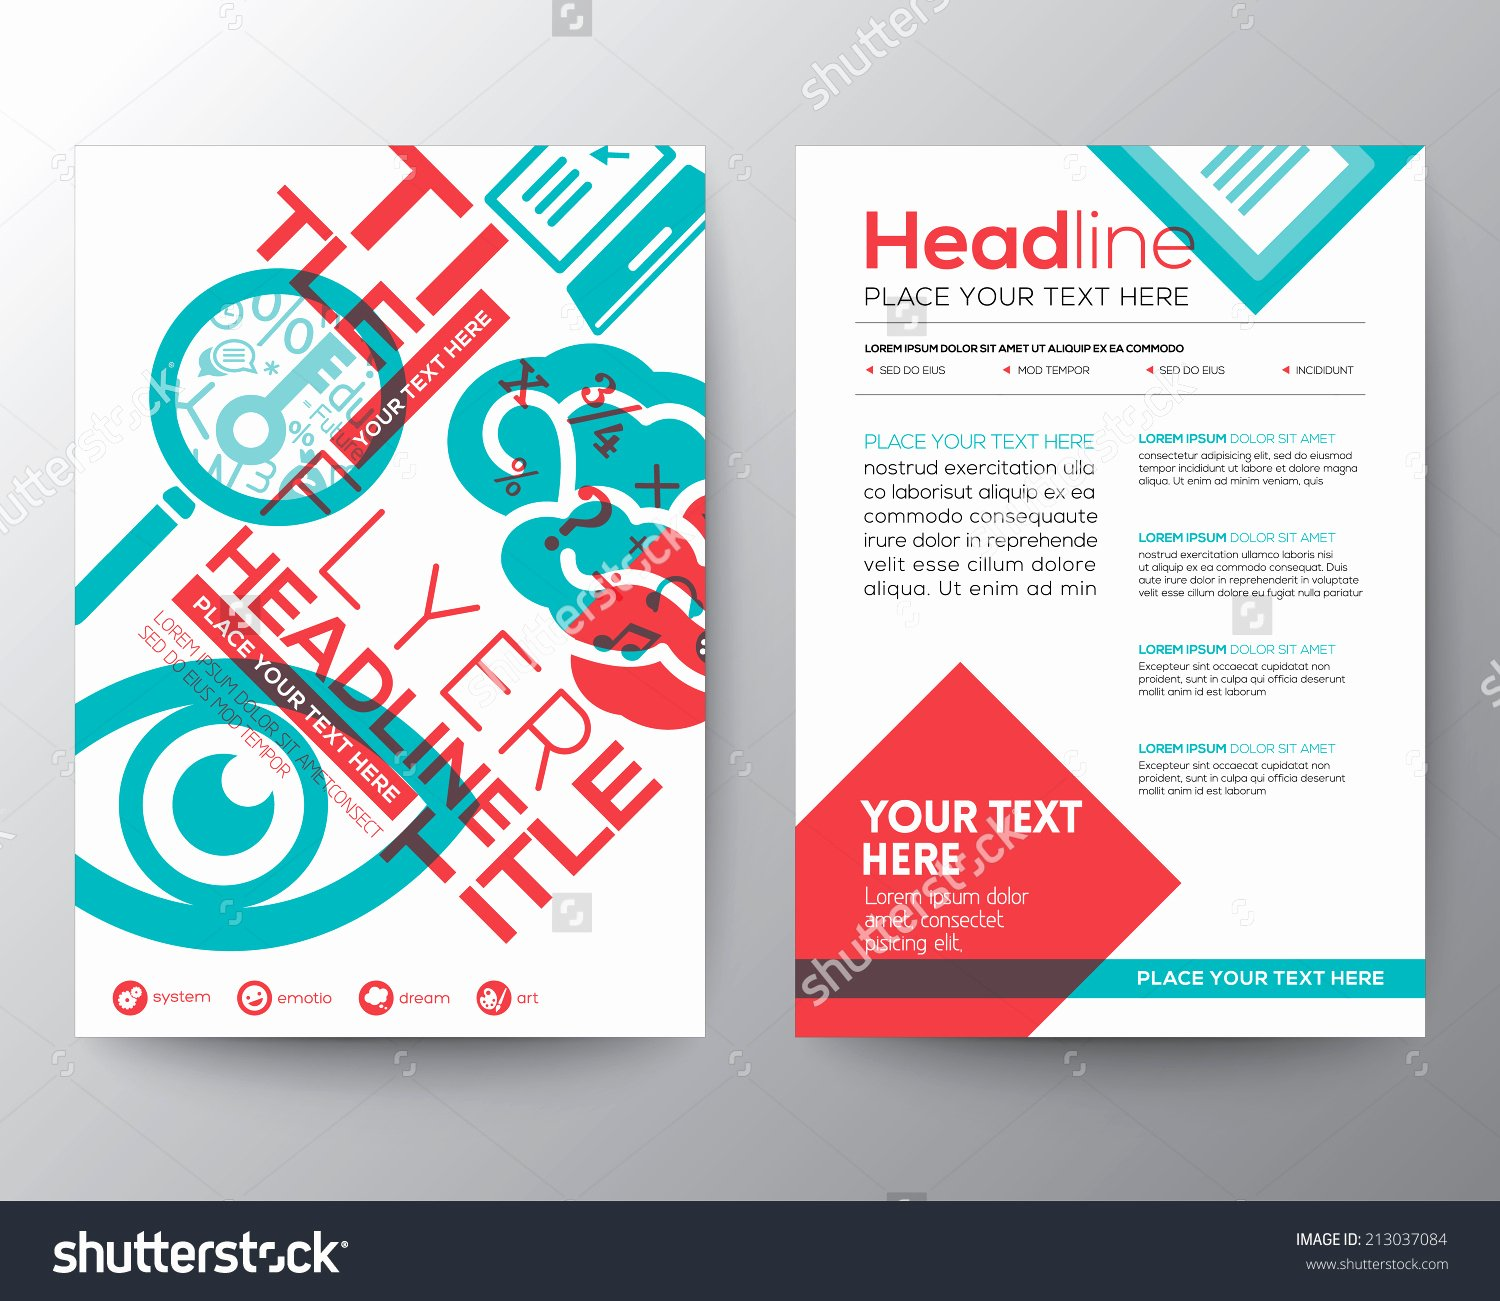 Flyer Template Google Docs Elegant Free Google Flyer Design Yourweek D1b3dceca25e